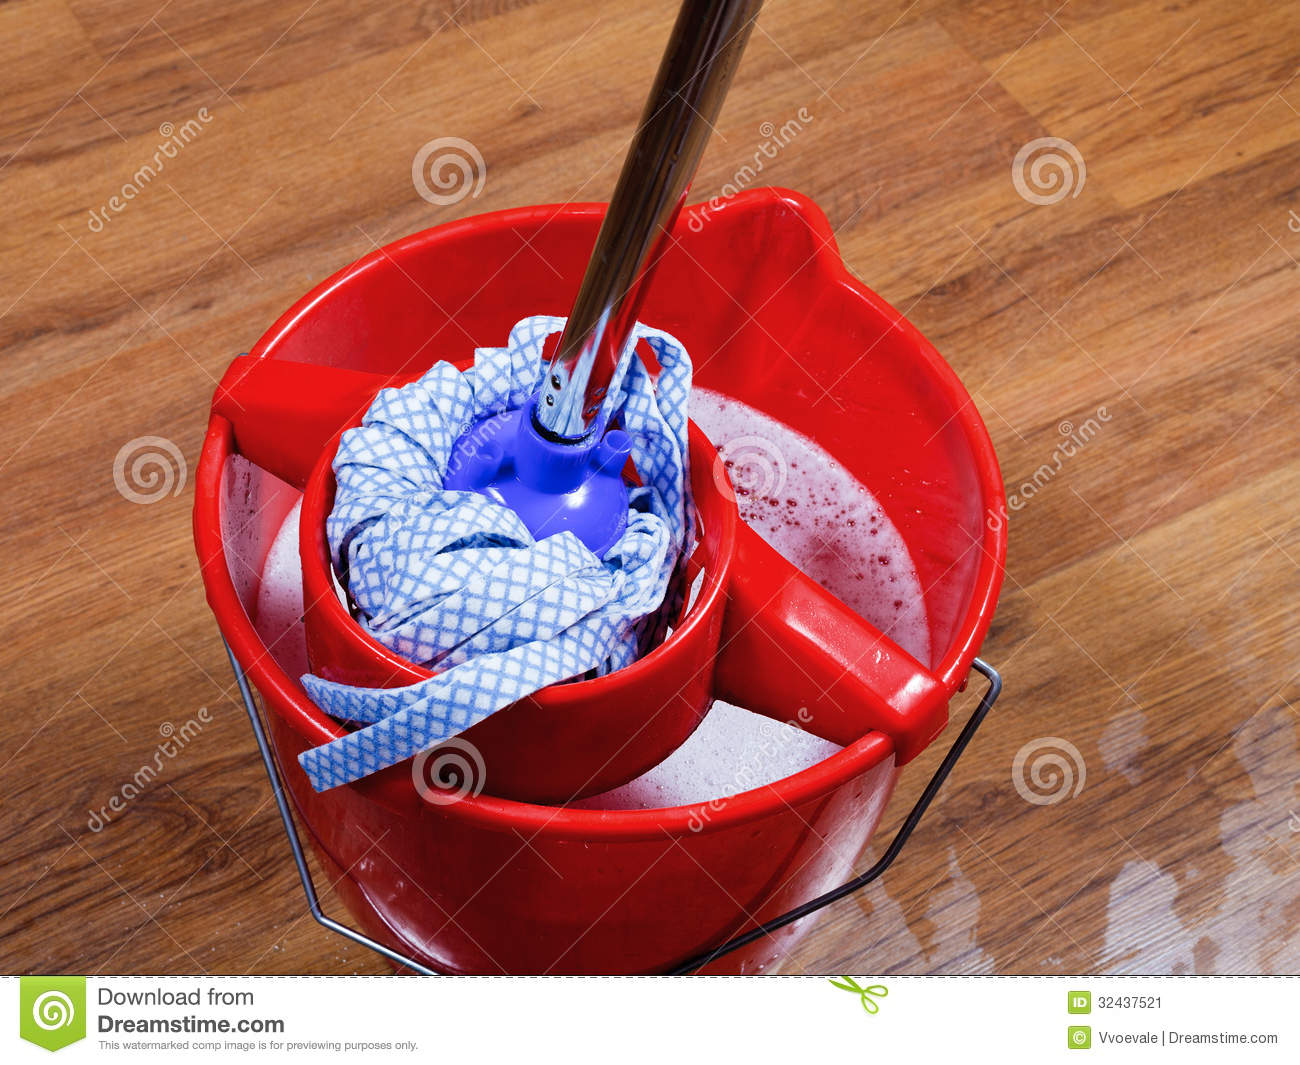 Mop In Red Bucket With Water Stock Image - Image: 32437521